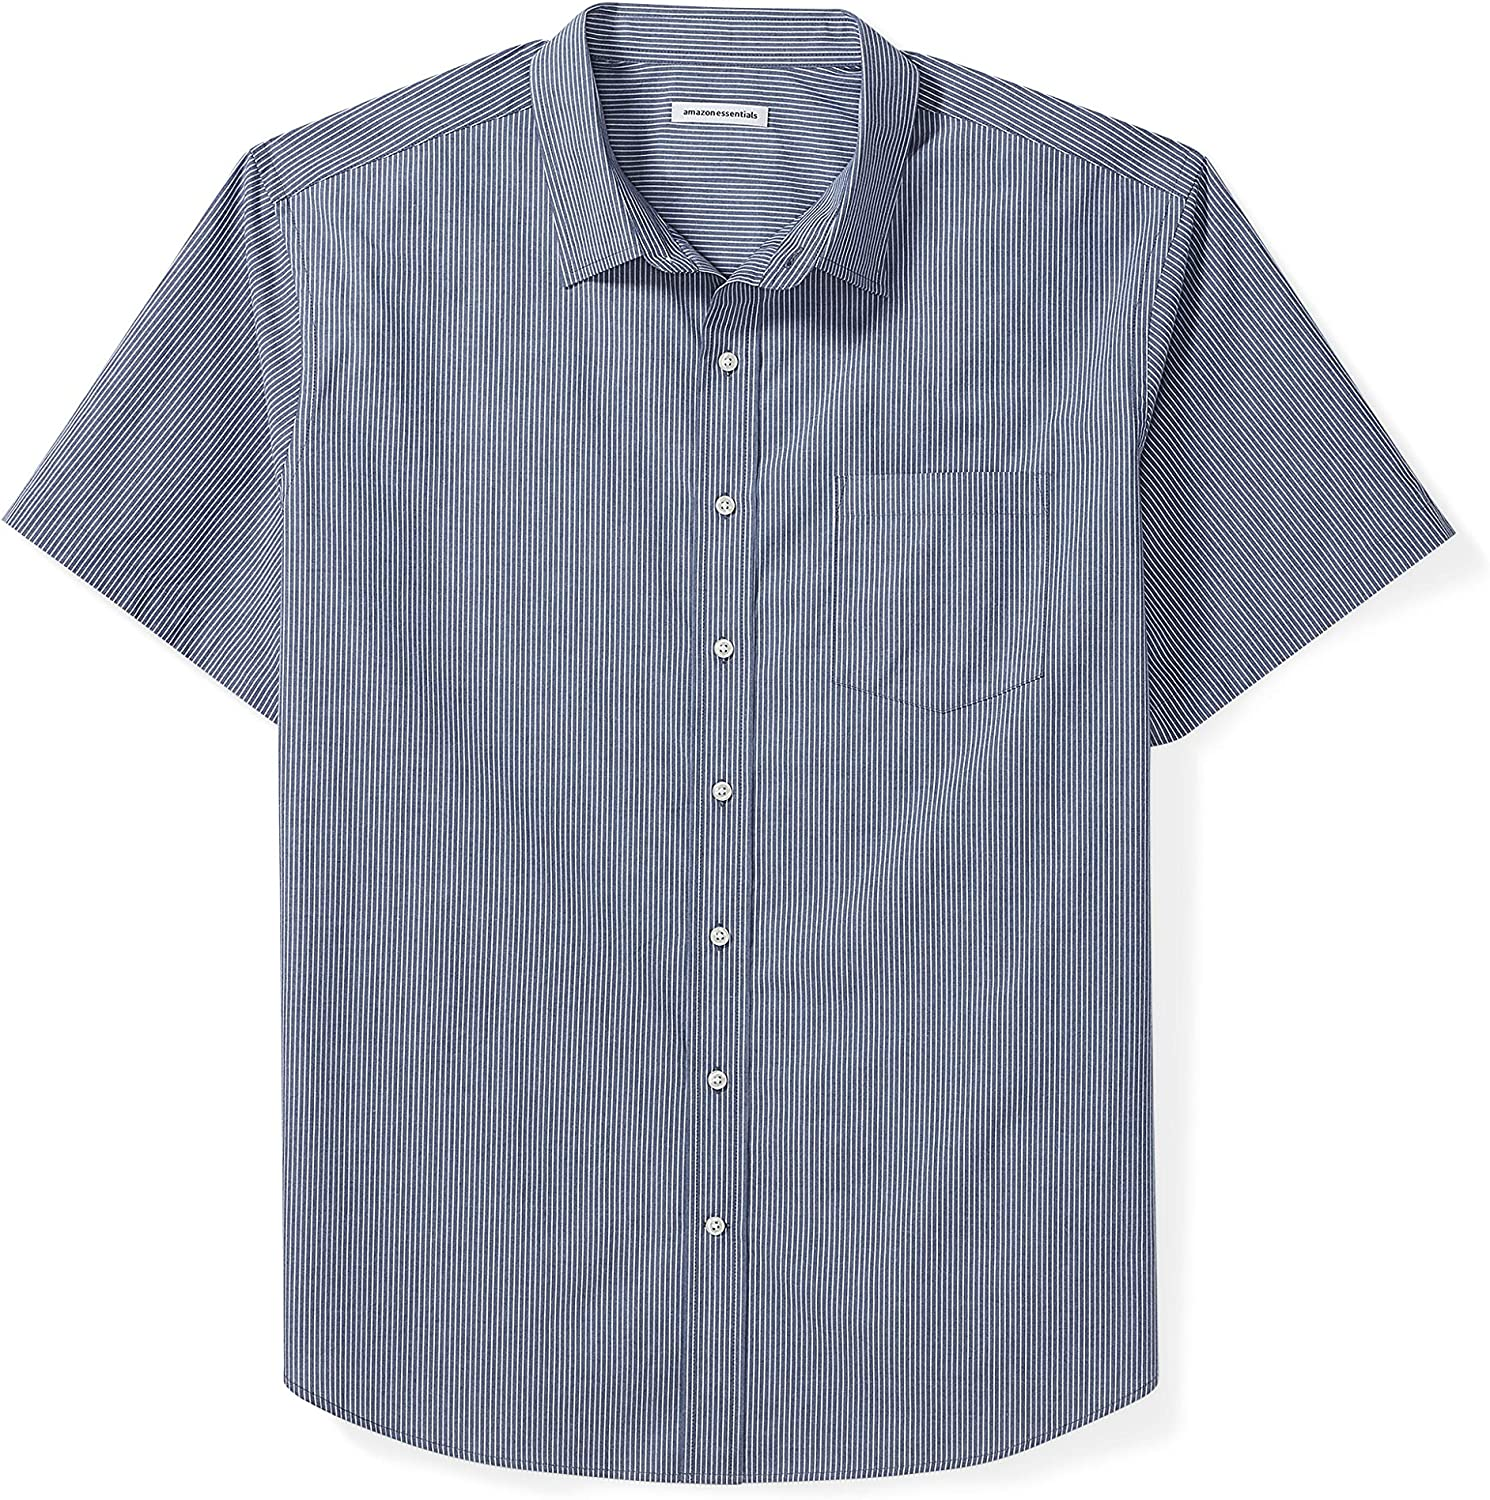 Essentials Men's Big & Tall Short-Sleeve Stripe Shirt fit by DXL: Clothing